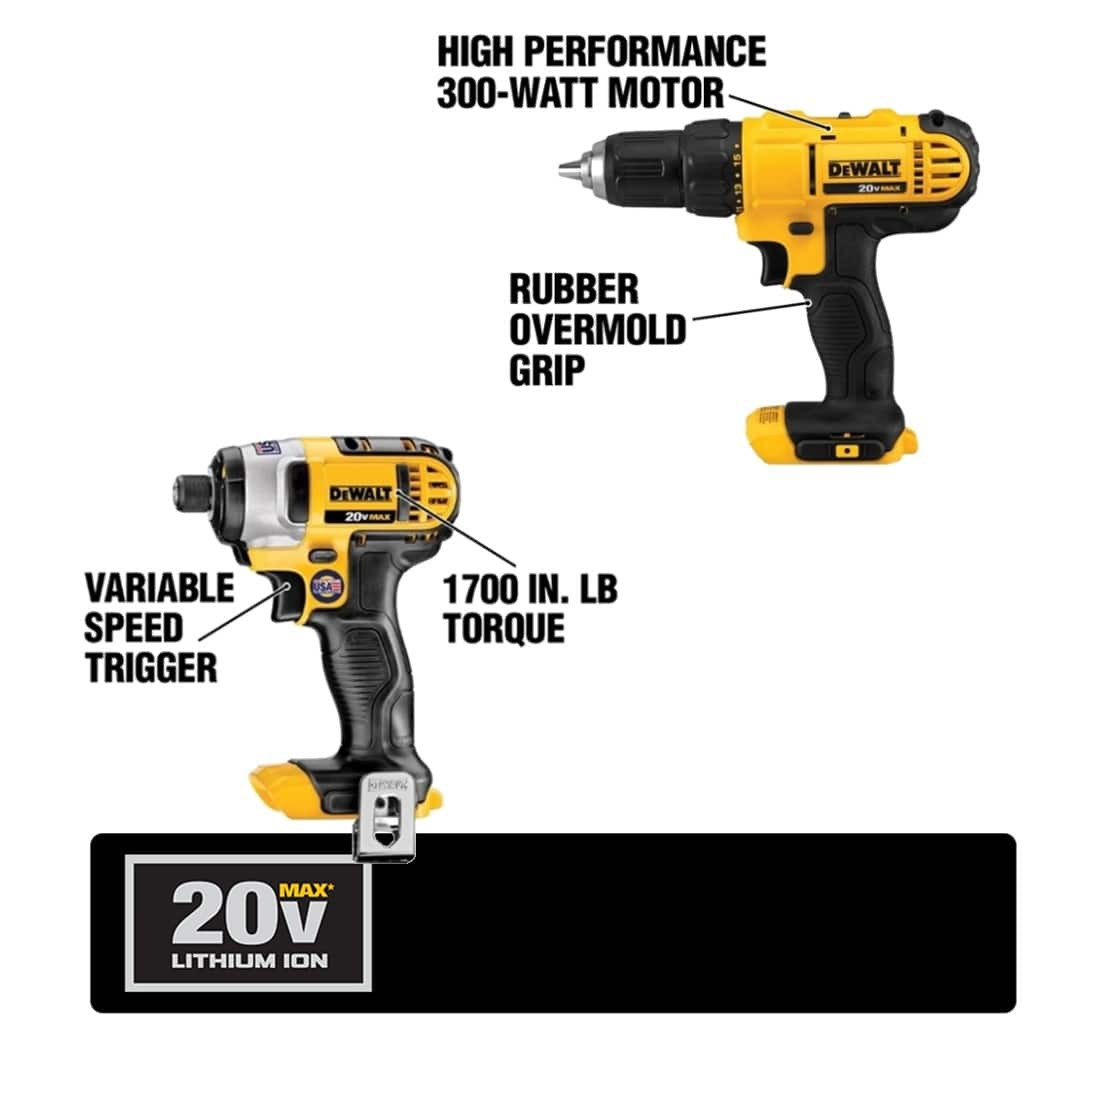 DCD771 Drill Driver has a compact, Lightweight design. DCF885 Impact Driver provides up to 1400 in. lbs. of max torque and delivers up to 2800 RPM.